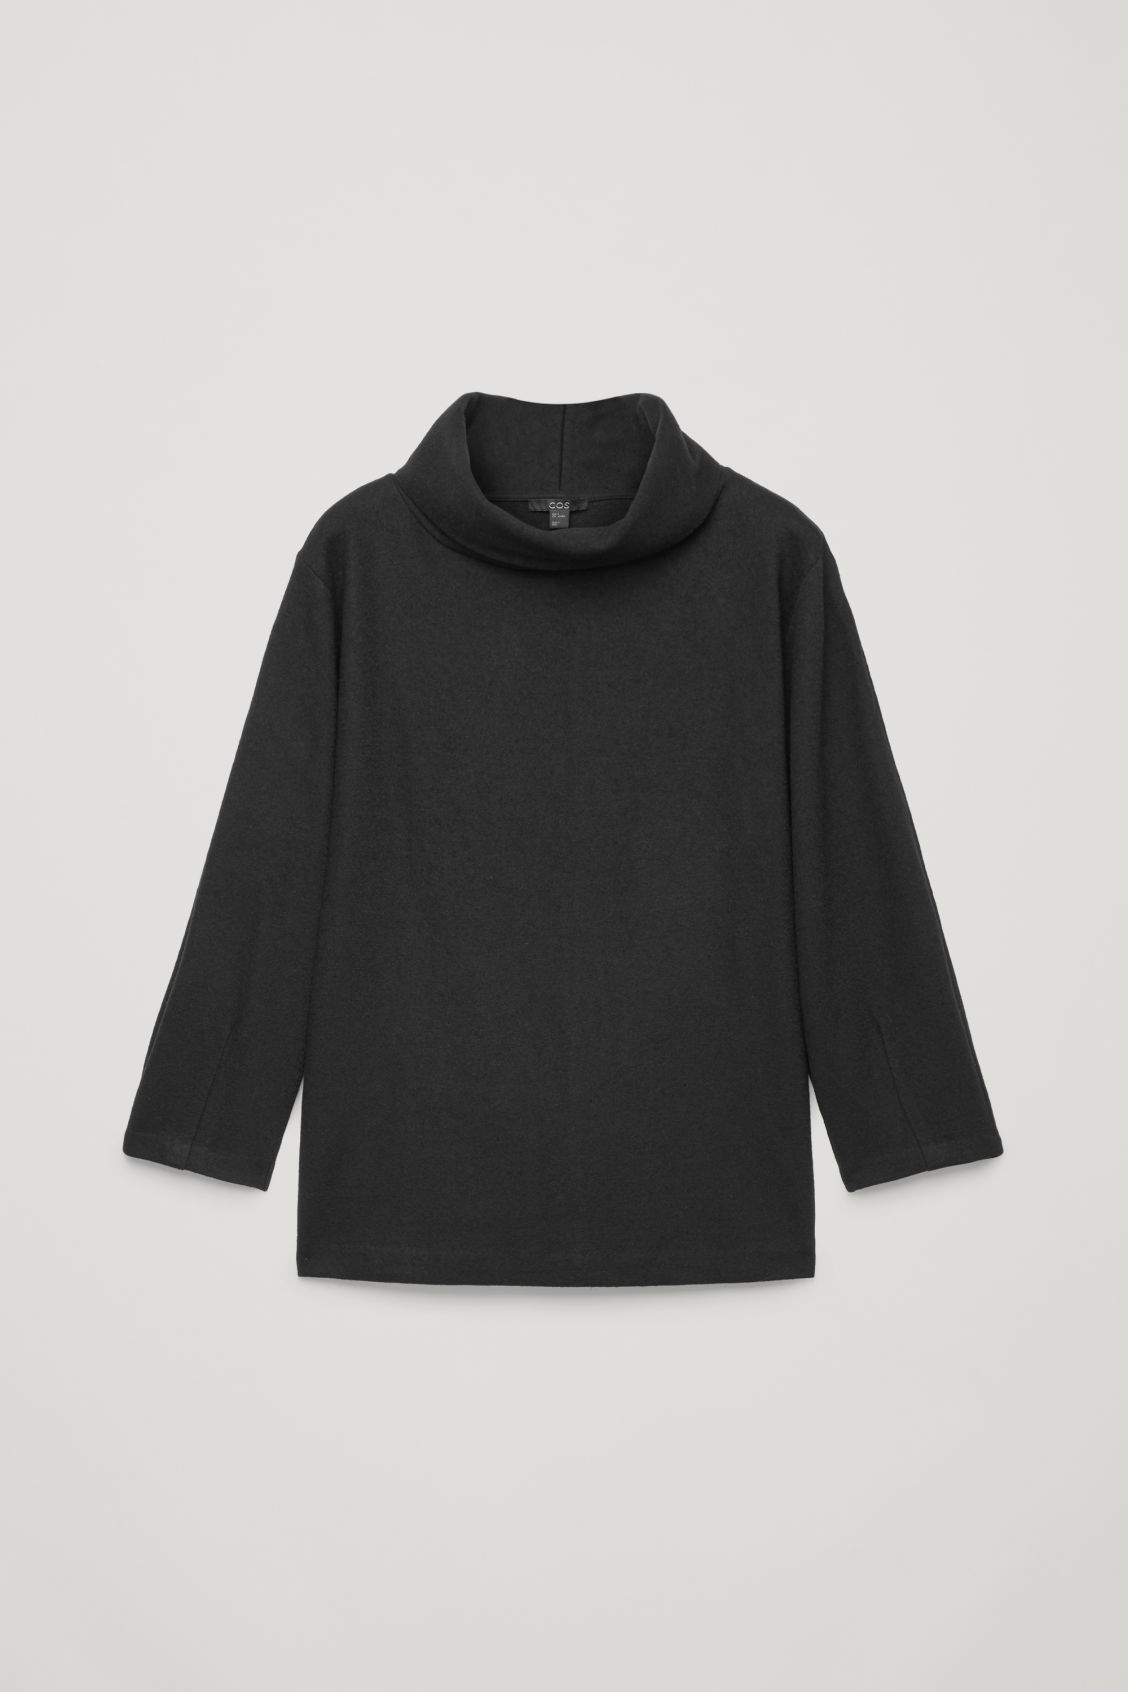 Jersey Wool Top With Cocoon Sleeves, Black from COS